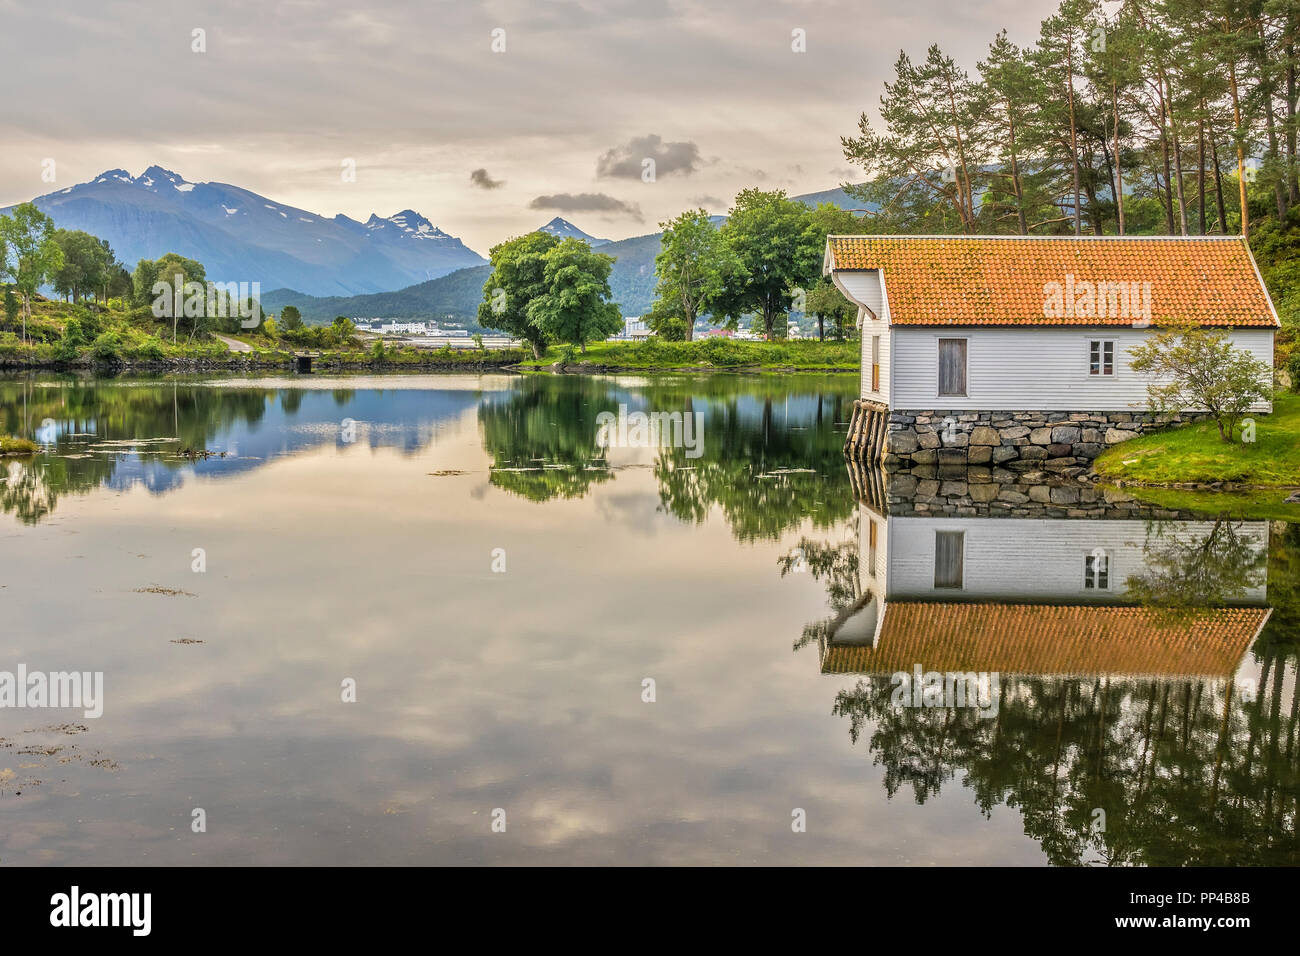 Seahouse From Katavagen, Sunnmore Open Air Museum, Alesund, Norway - Stock Image